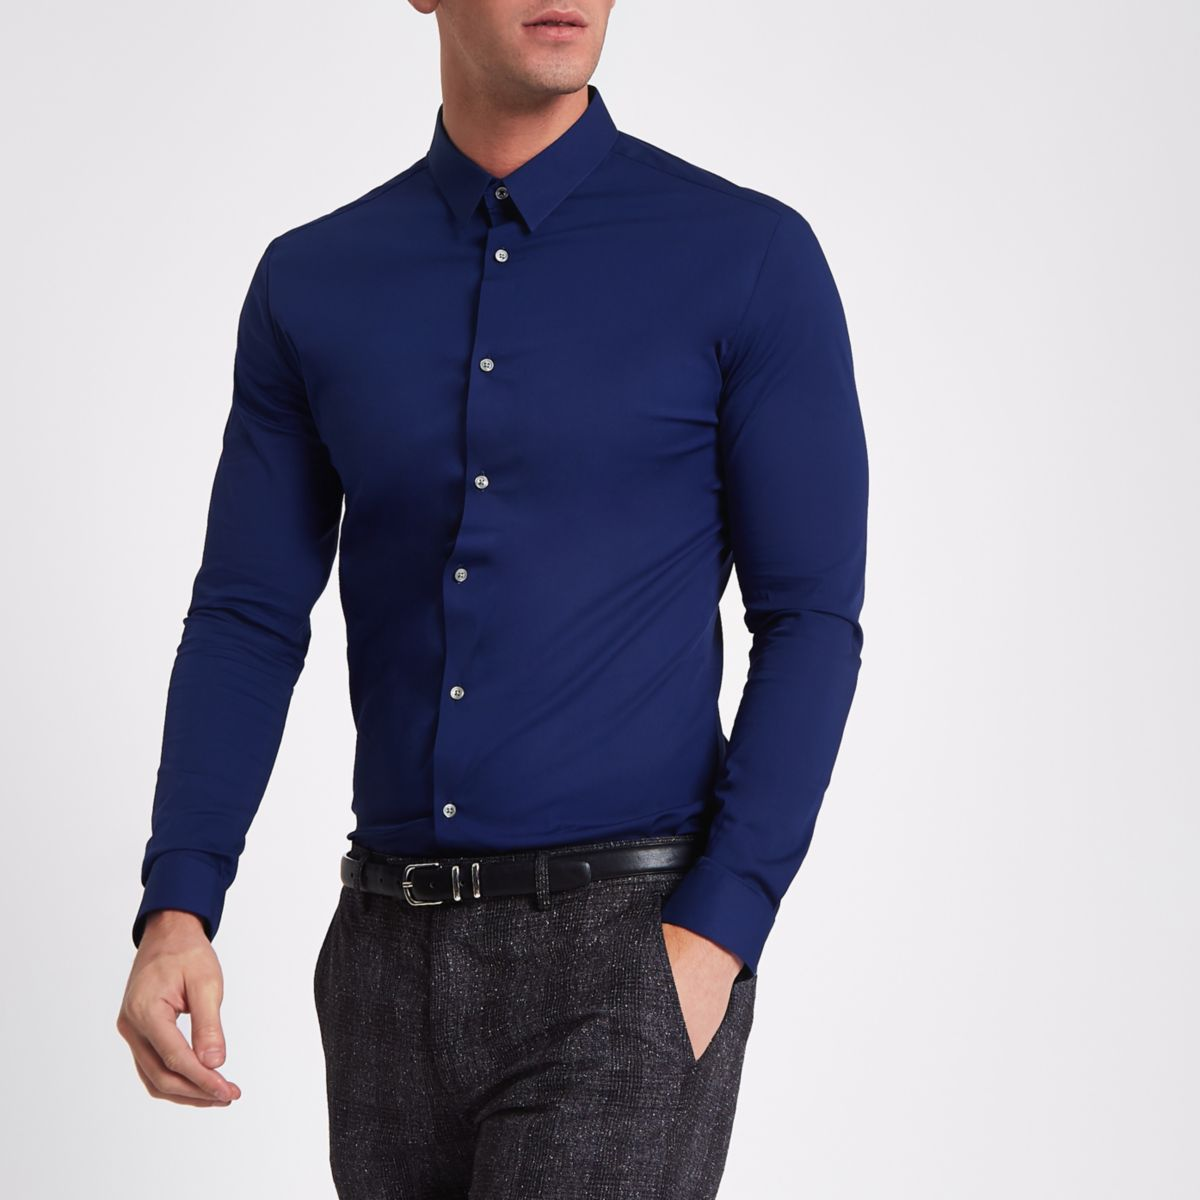 Navy muscle fit long sleeve shirt